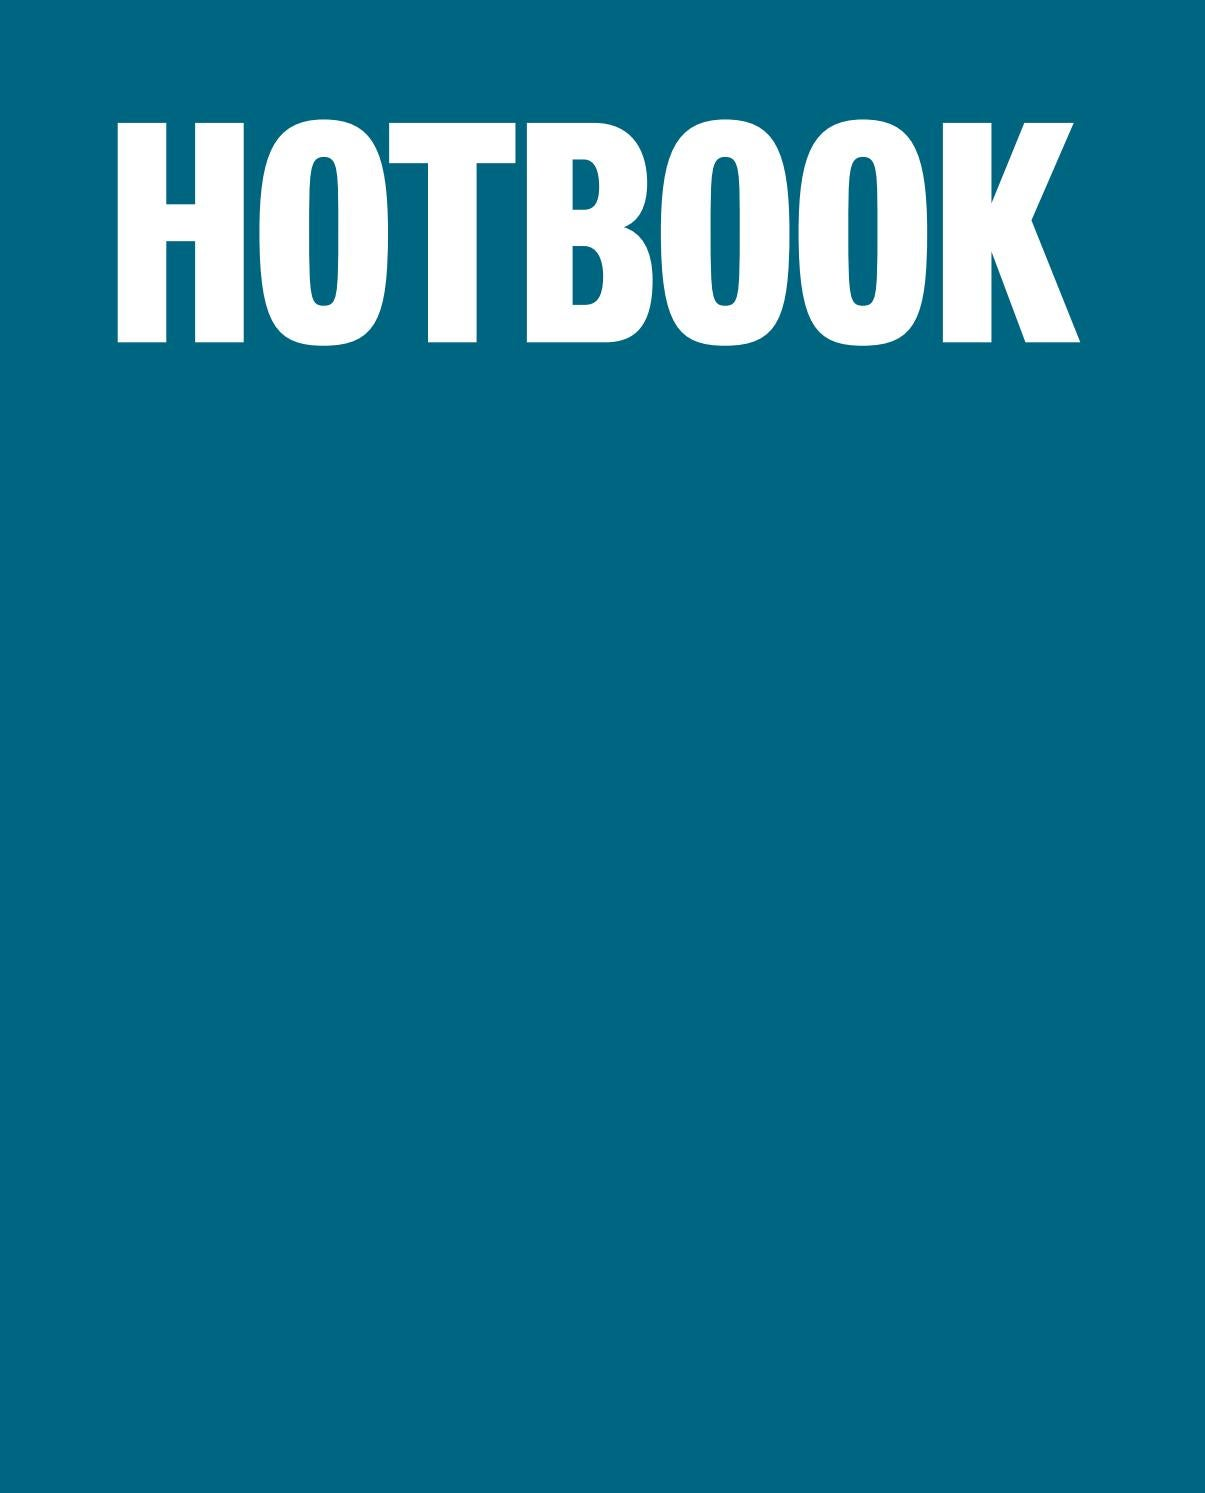 HOTBOOK 024 by HOTBOOK - issuu 01617b96923f